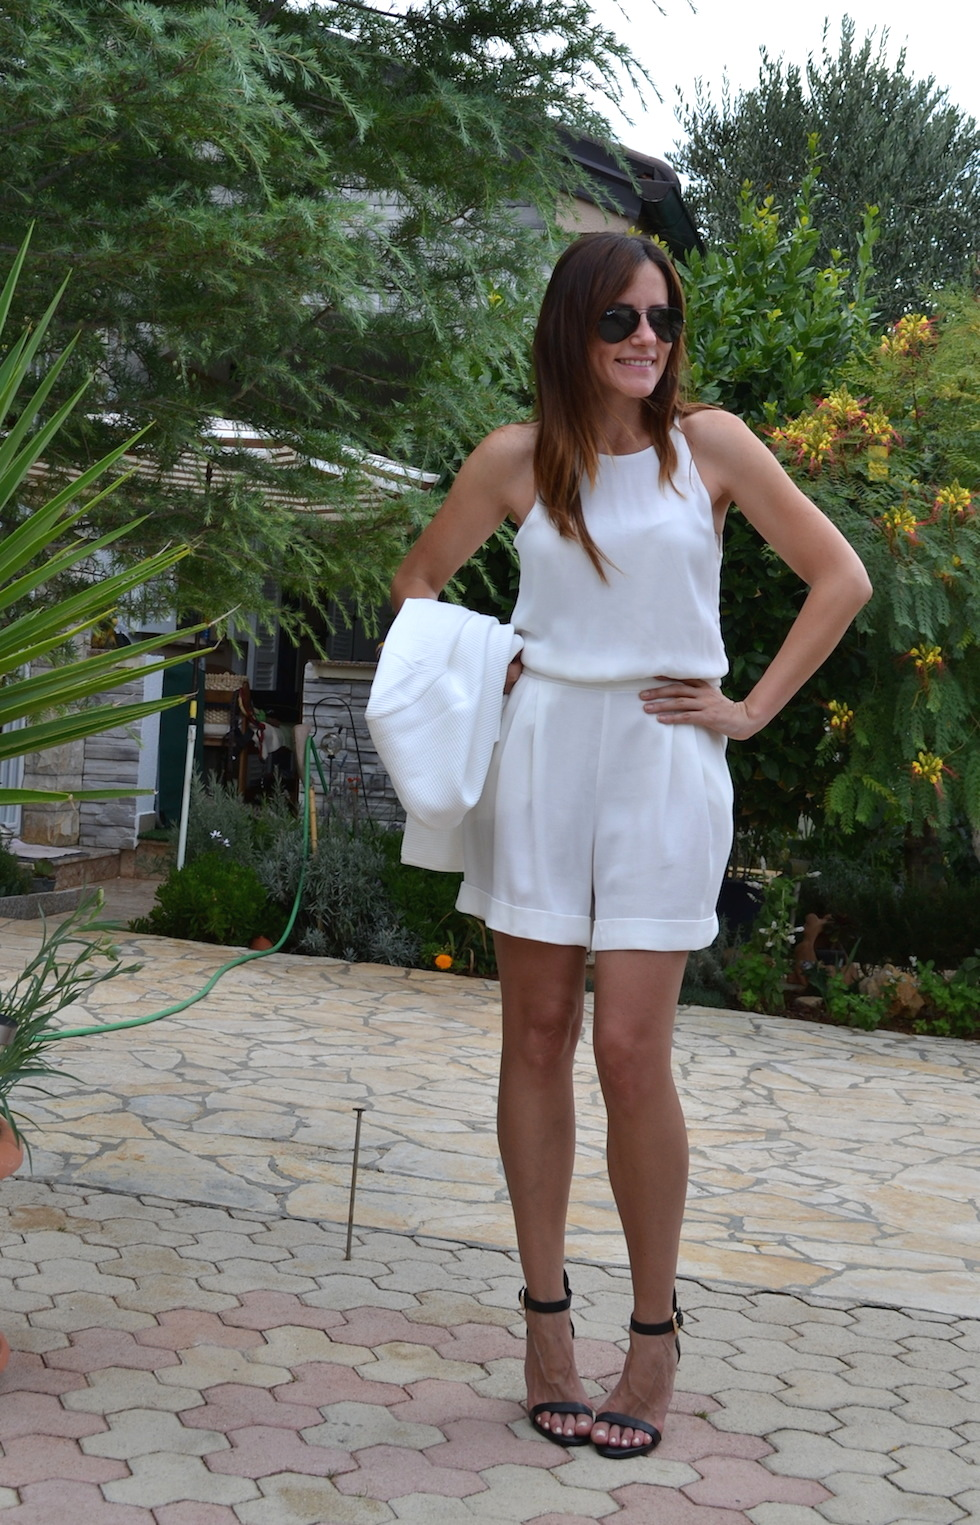 weiss in weiss - outfit sommer 2014